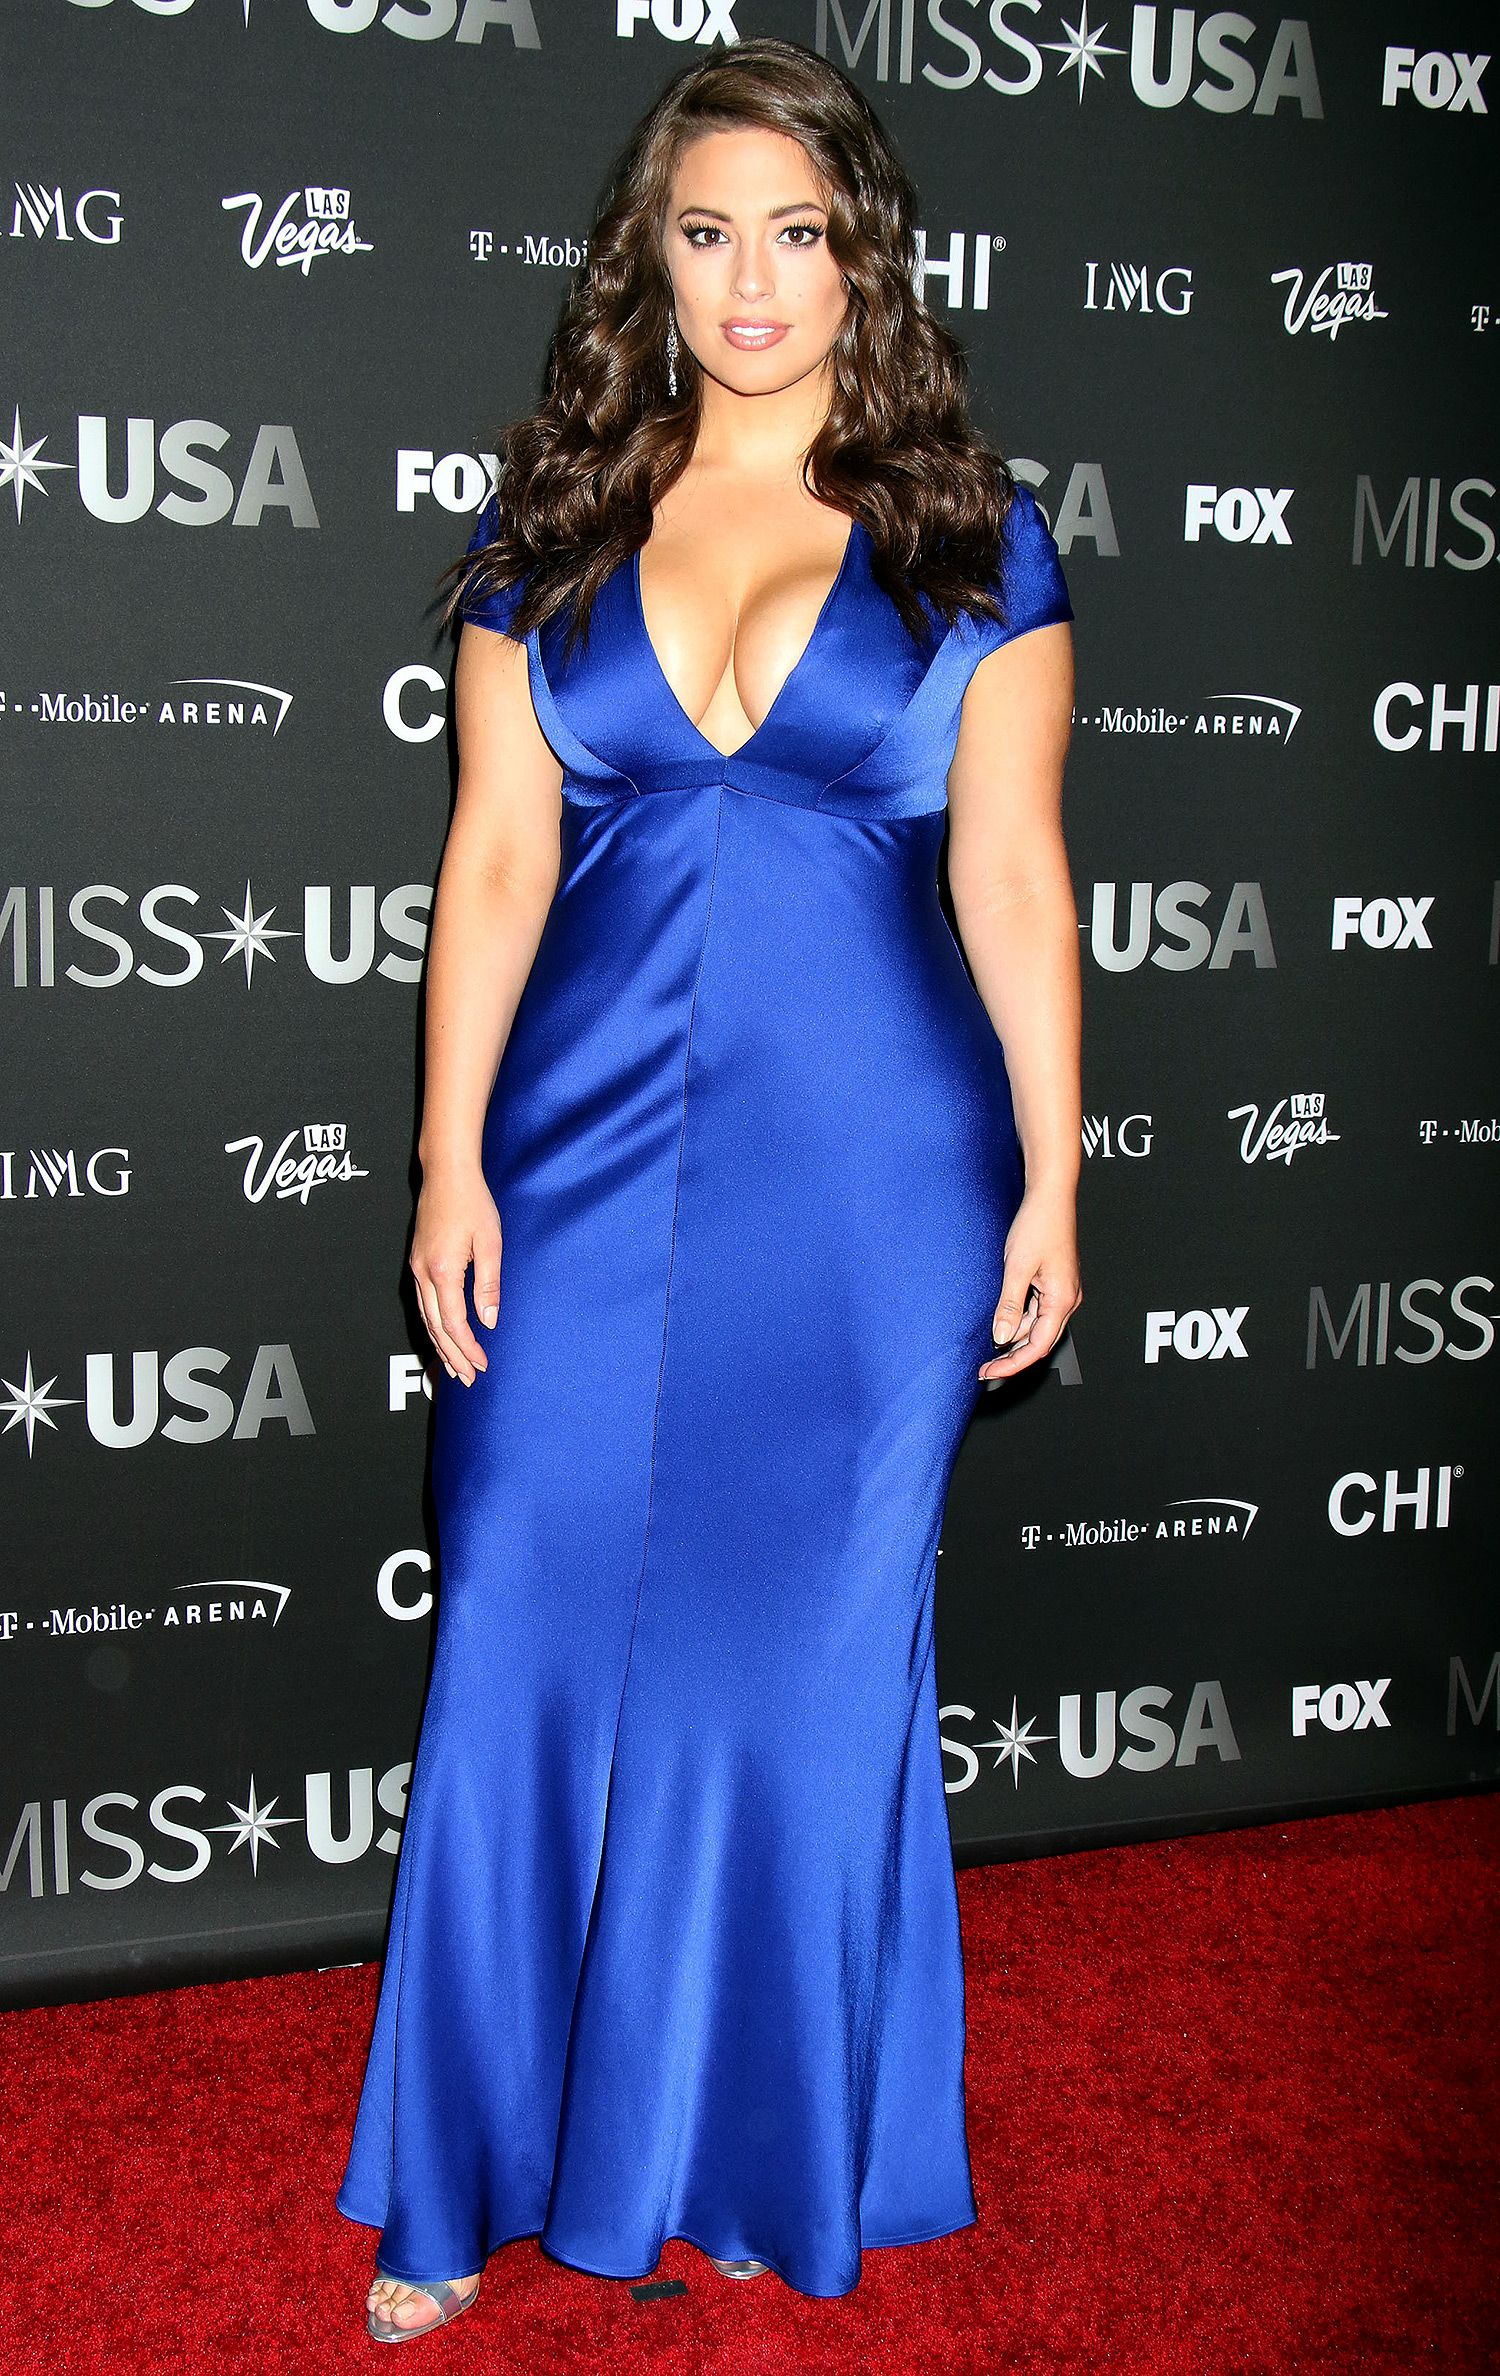 ASHLEY GRAHAM in a low-cut blue gown, plus silver sandals and diamond  jewels, at the Miss USA competition in Las Vegas.